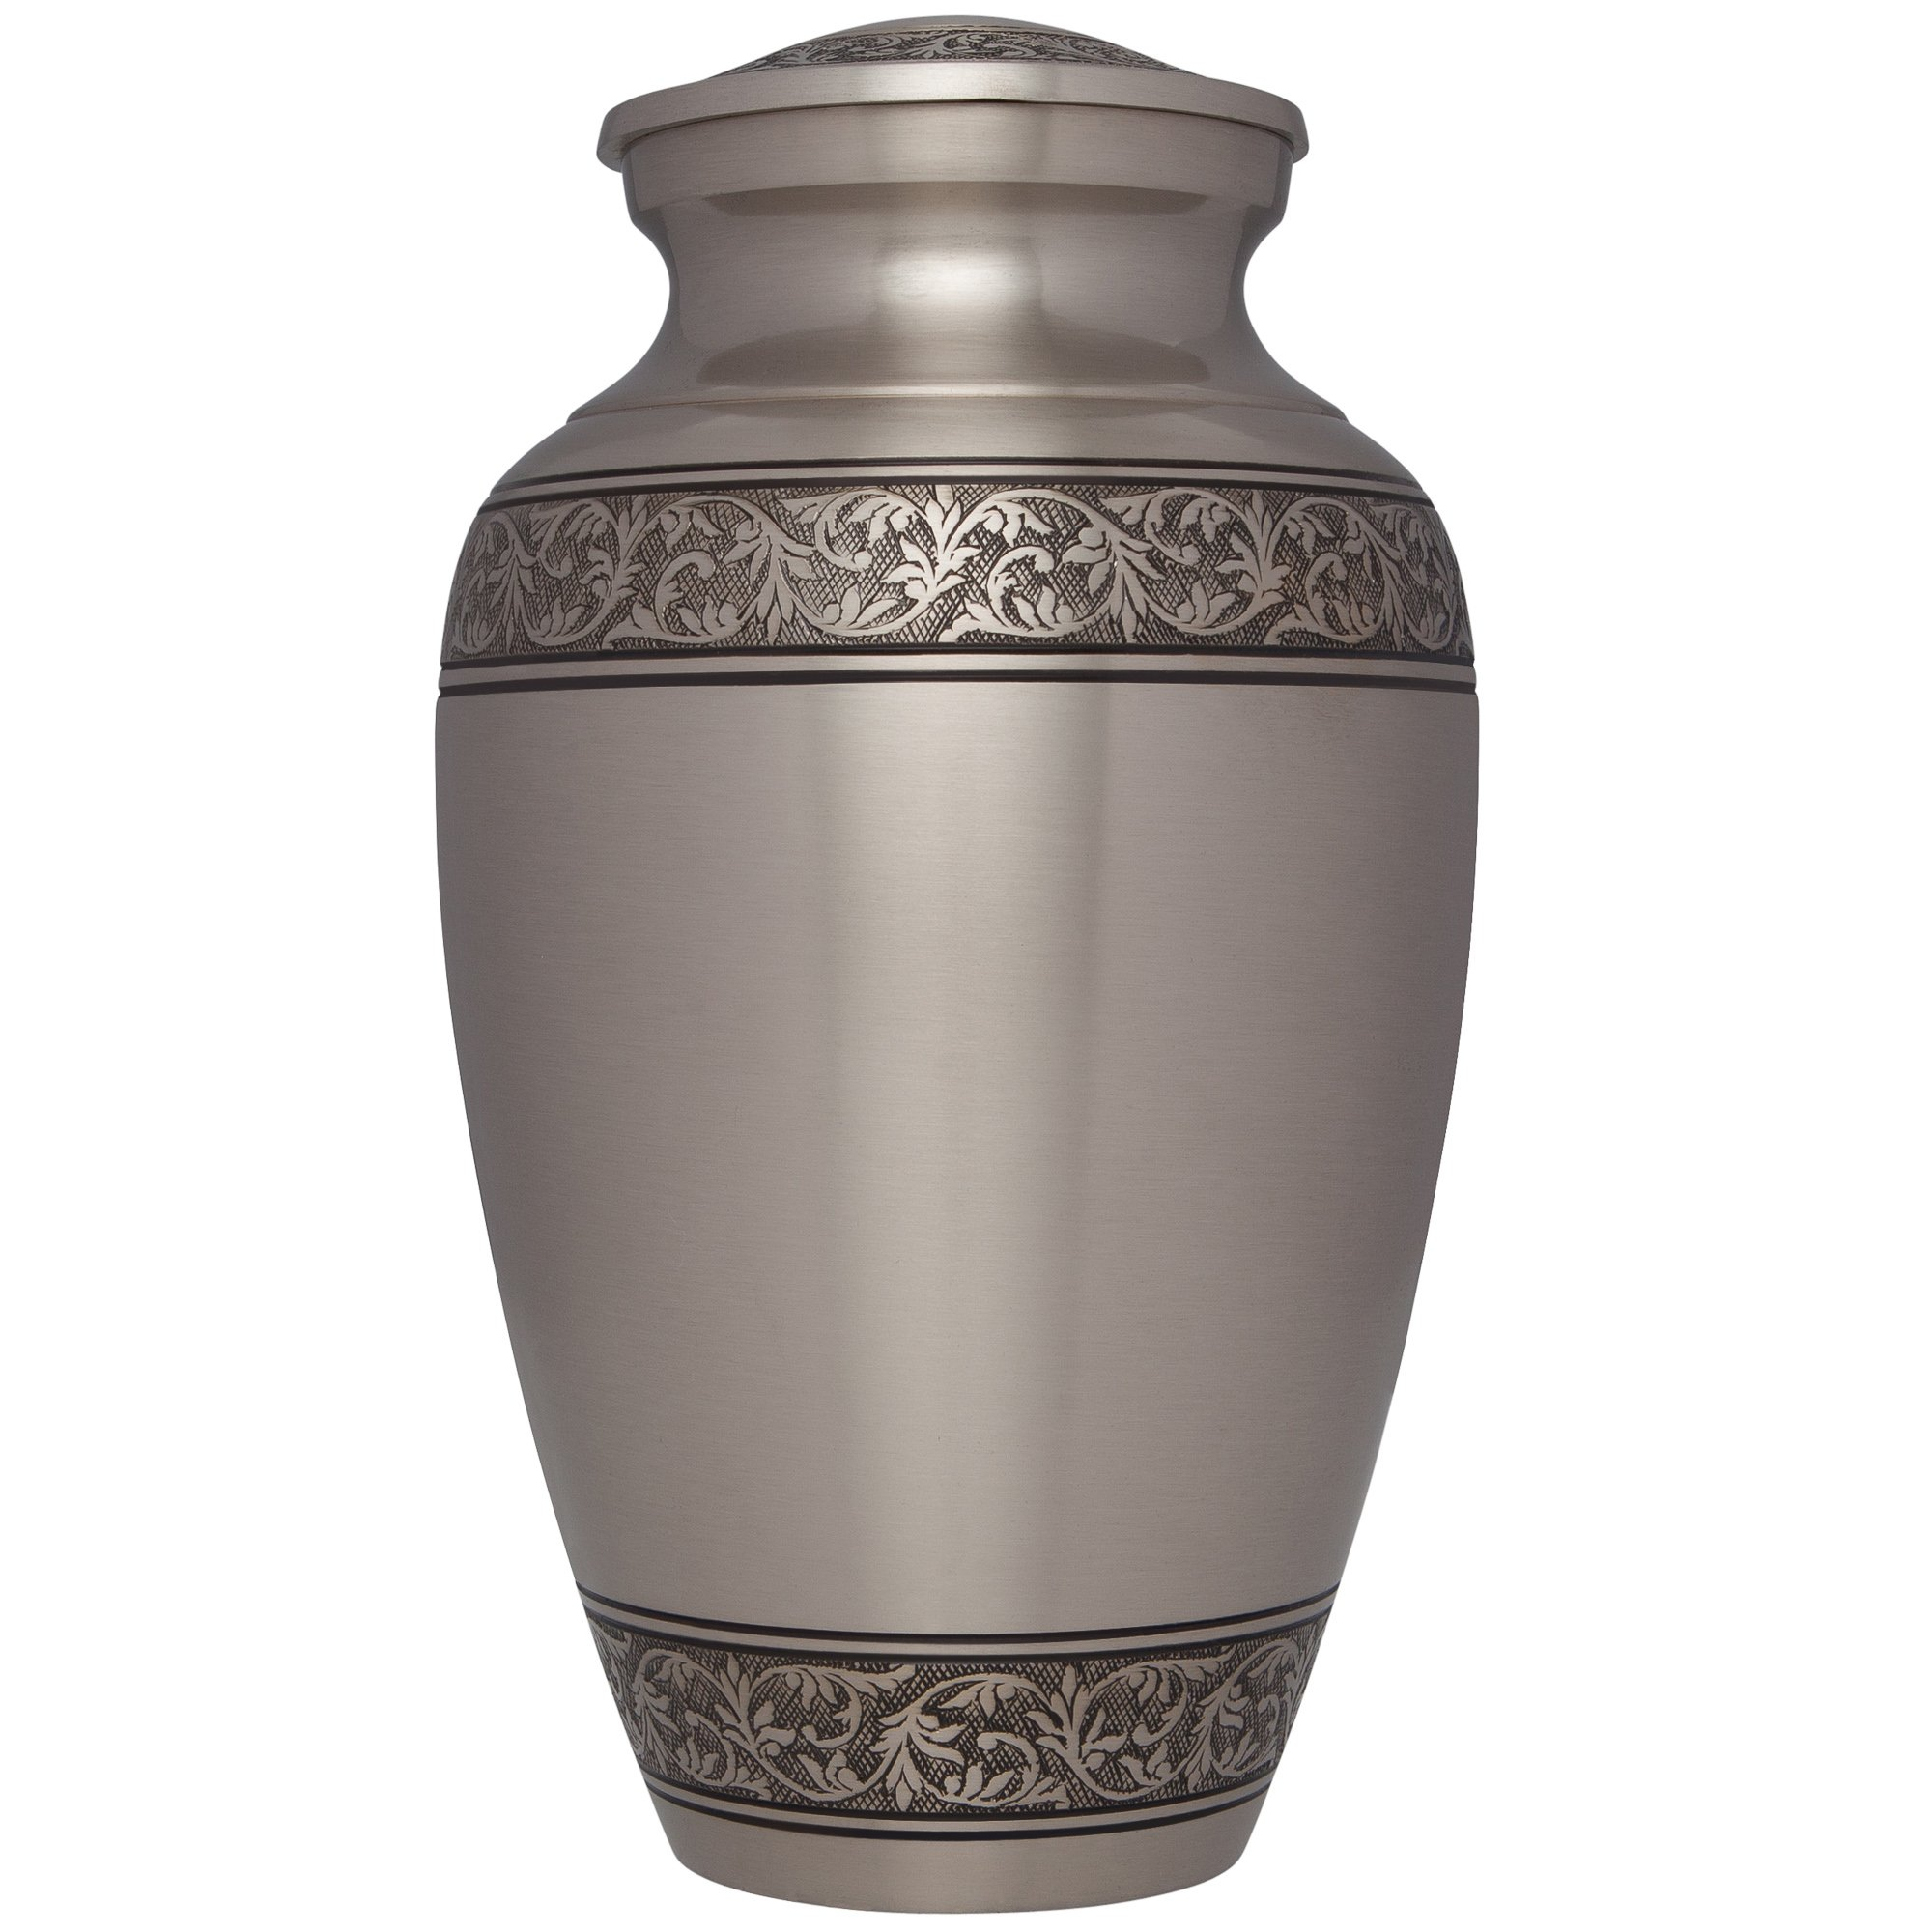 Silver Funeral Urn by Liliane Memorials - Cremation Urn for Human Ashes - Hand Made in Brass -Suitable for Cemetery Burial or Niche - Large Size fits remains of Adults up to 200 lbs- Treviso Silver L